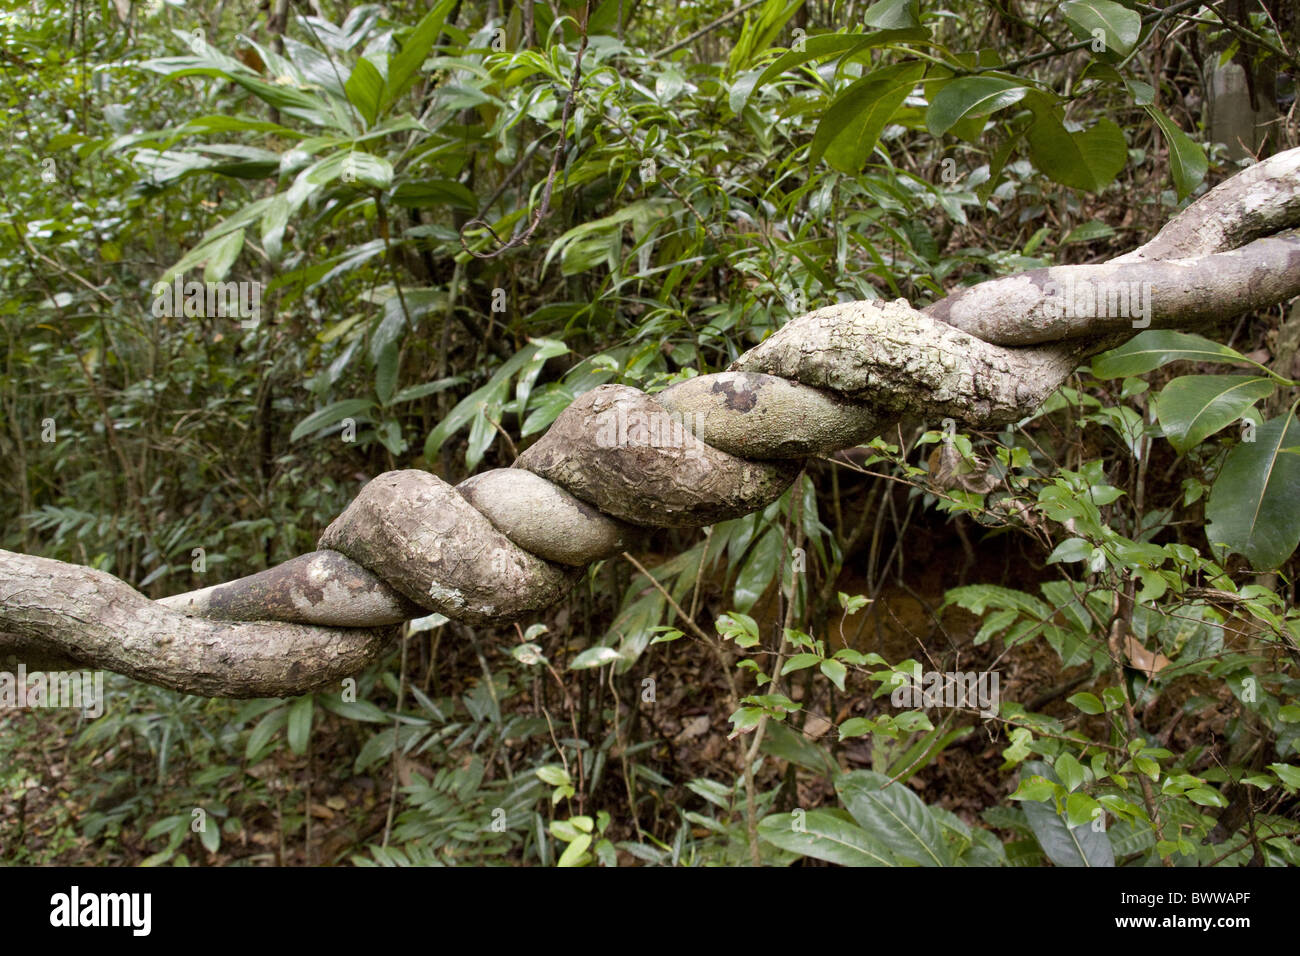 Twisted Tropical vine - Stock Image